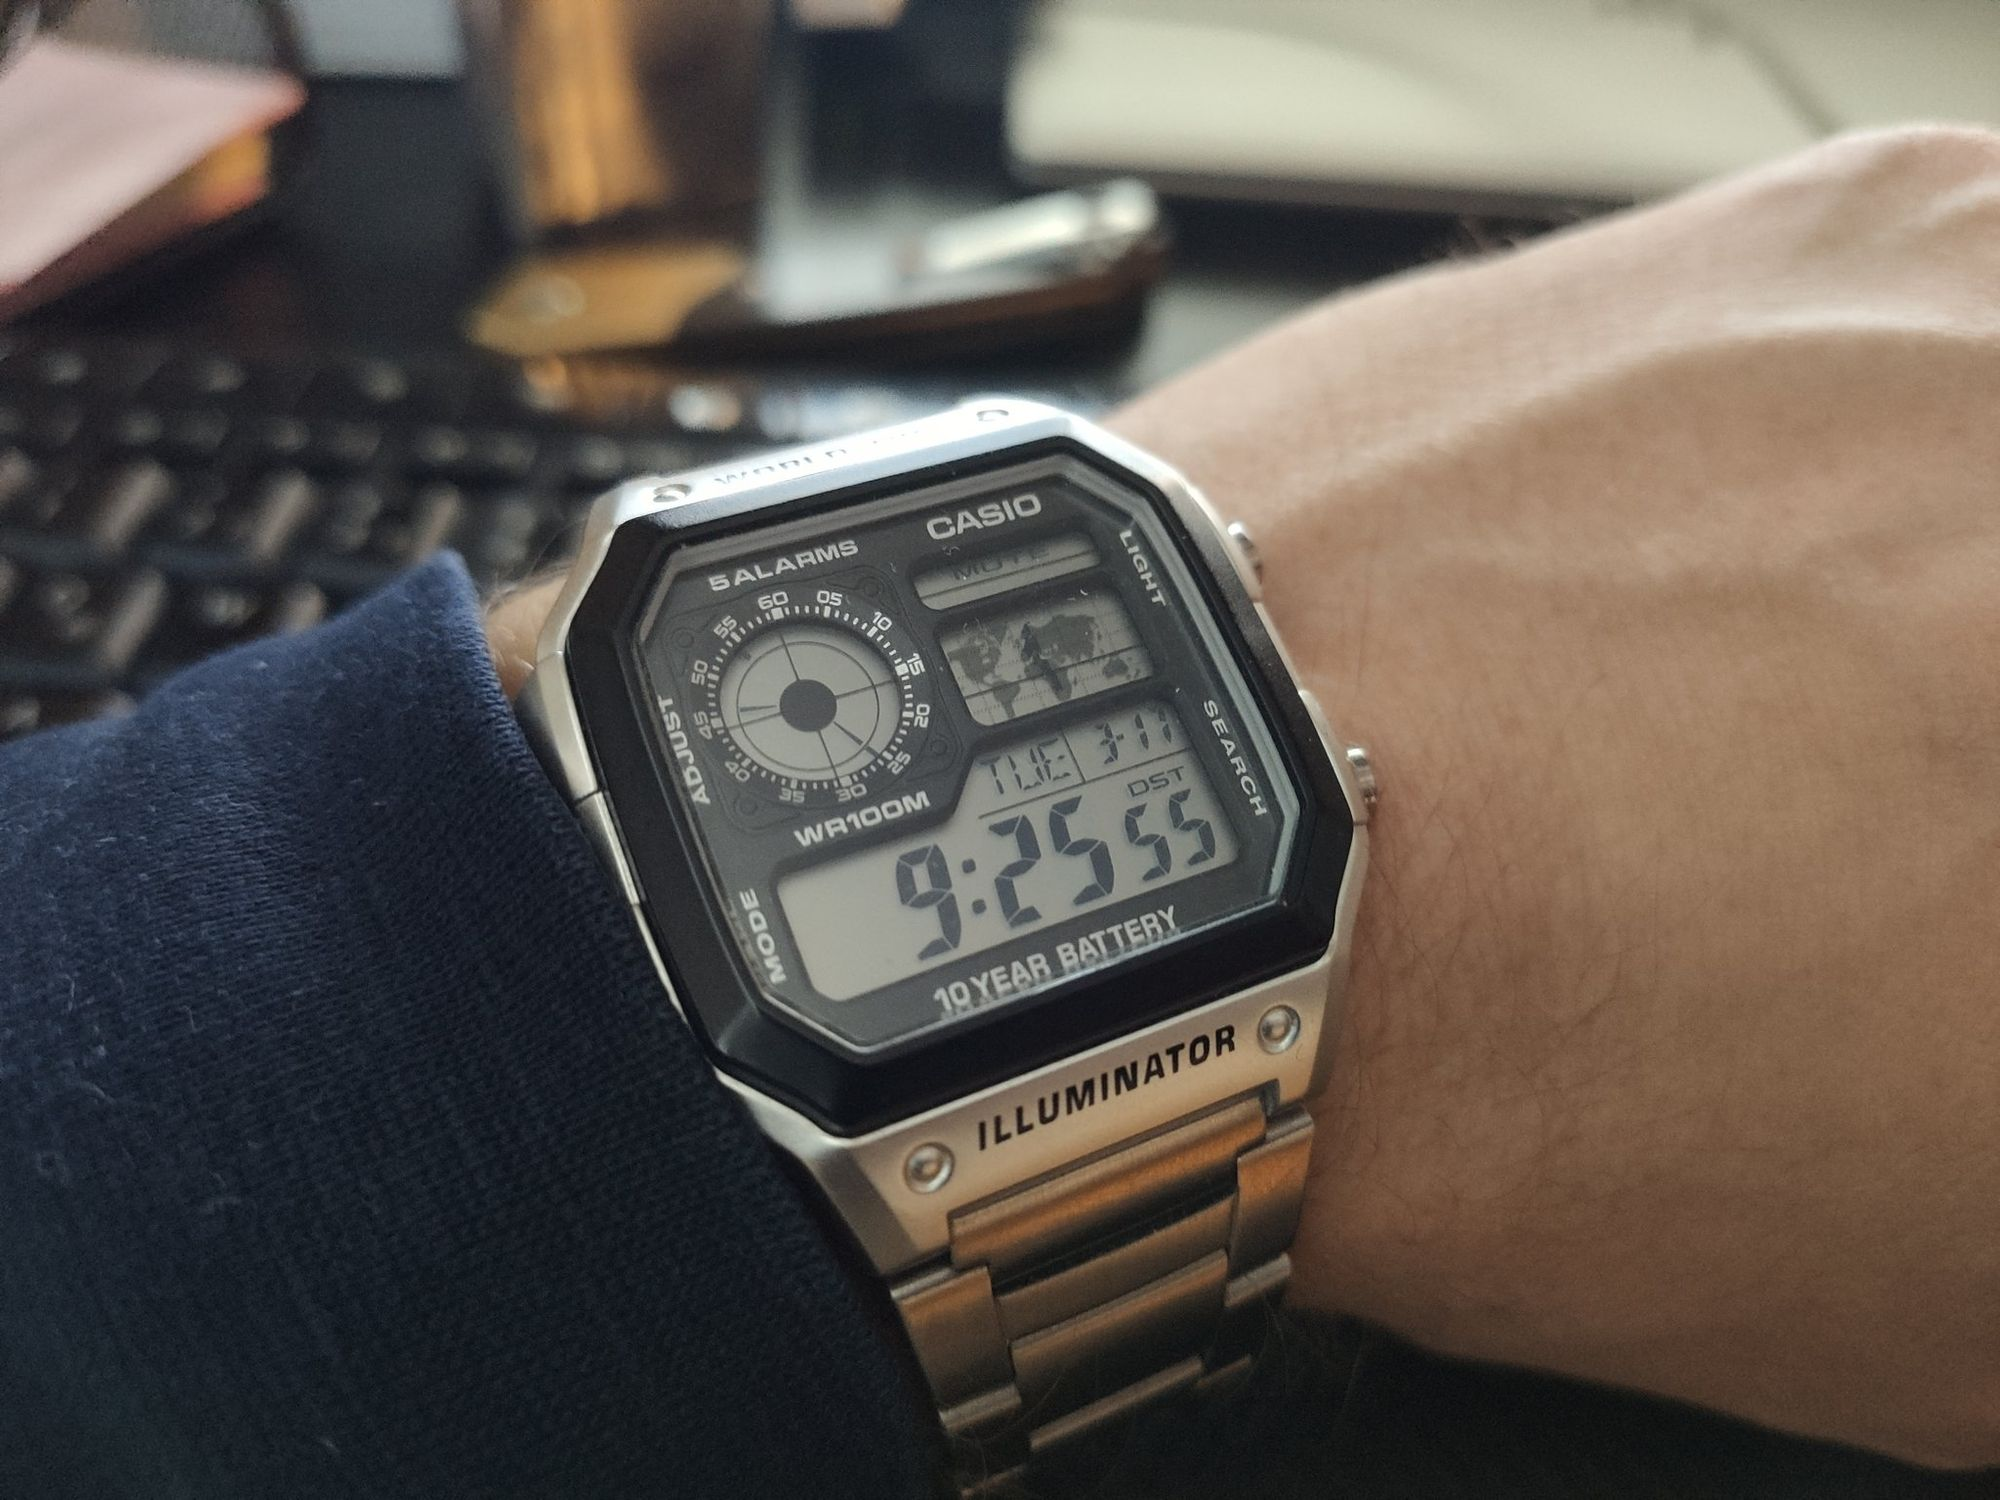 Watch of the day (or so), Pt. 1 - Casio Royale